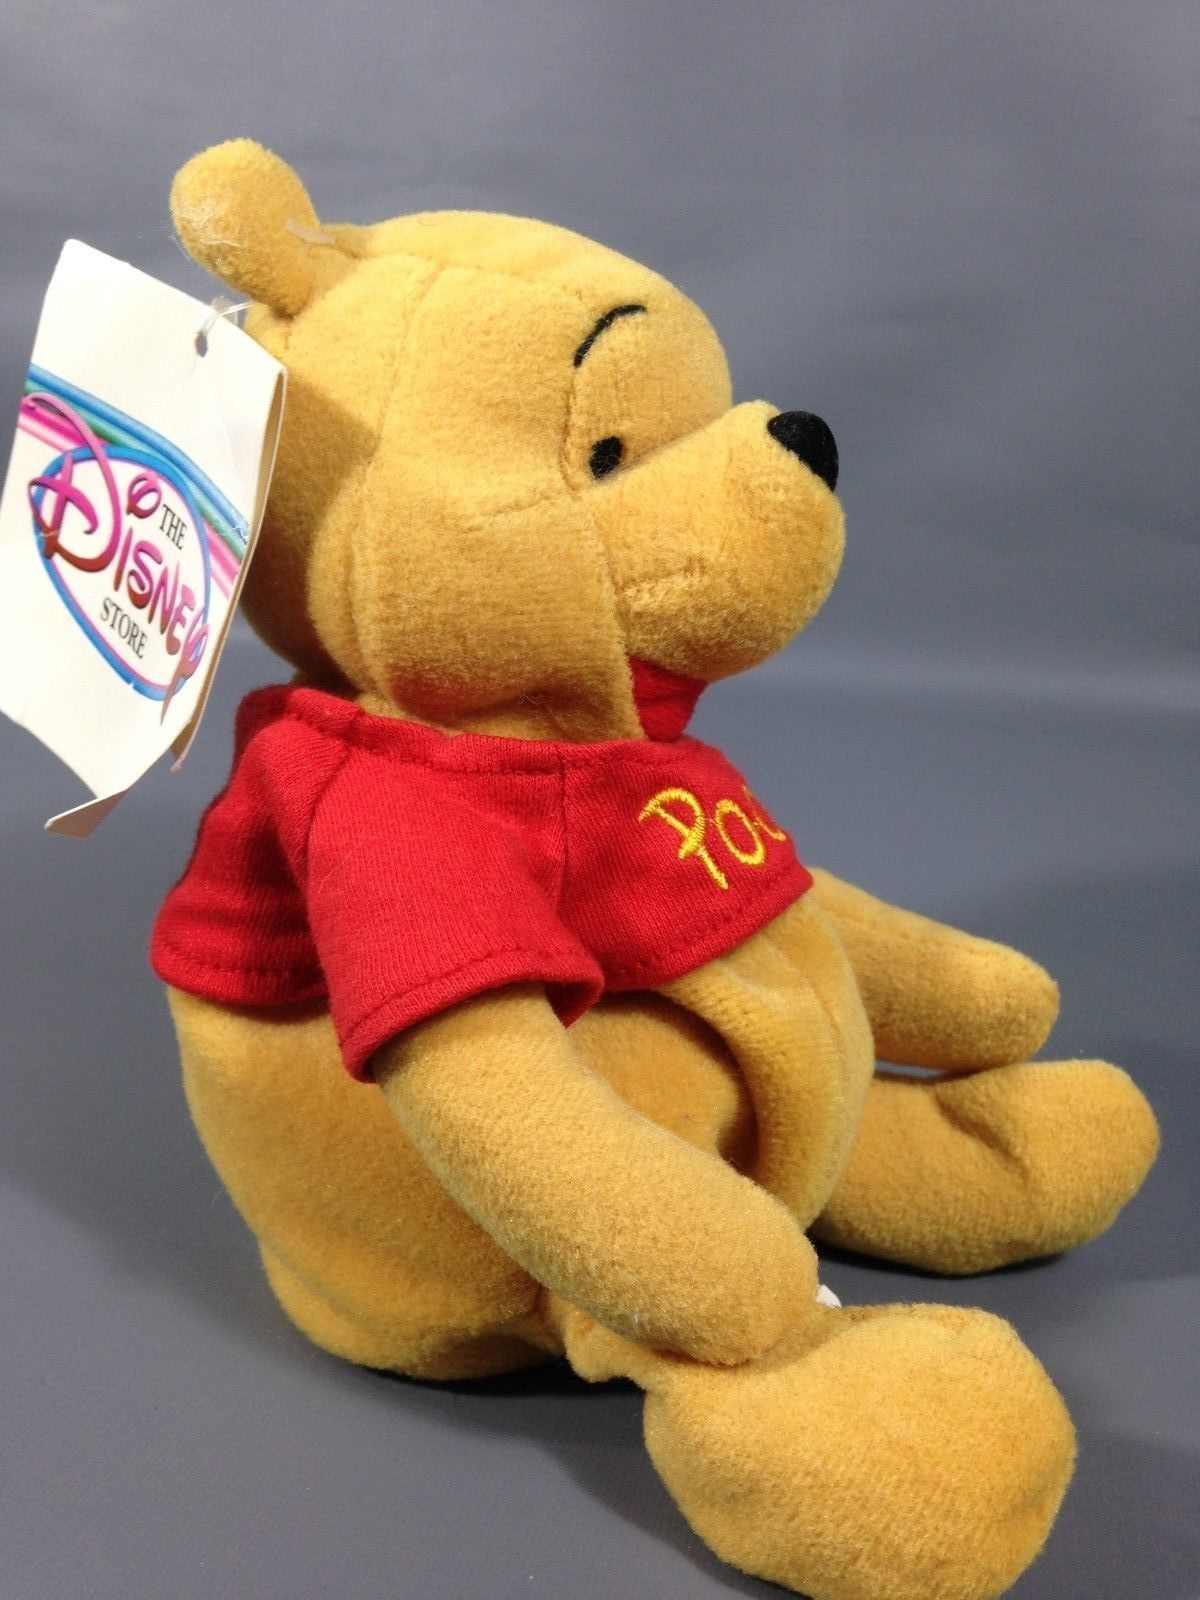 efc478d7e3bd Disney Store Winnie Pooh Bear Plush Mini and 27 similar items. 1